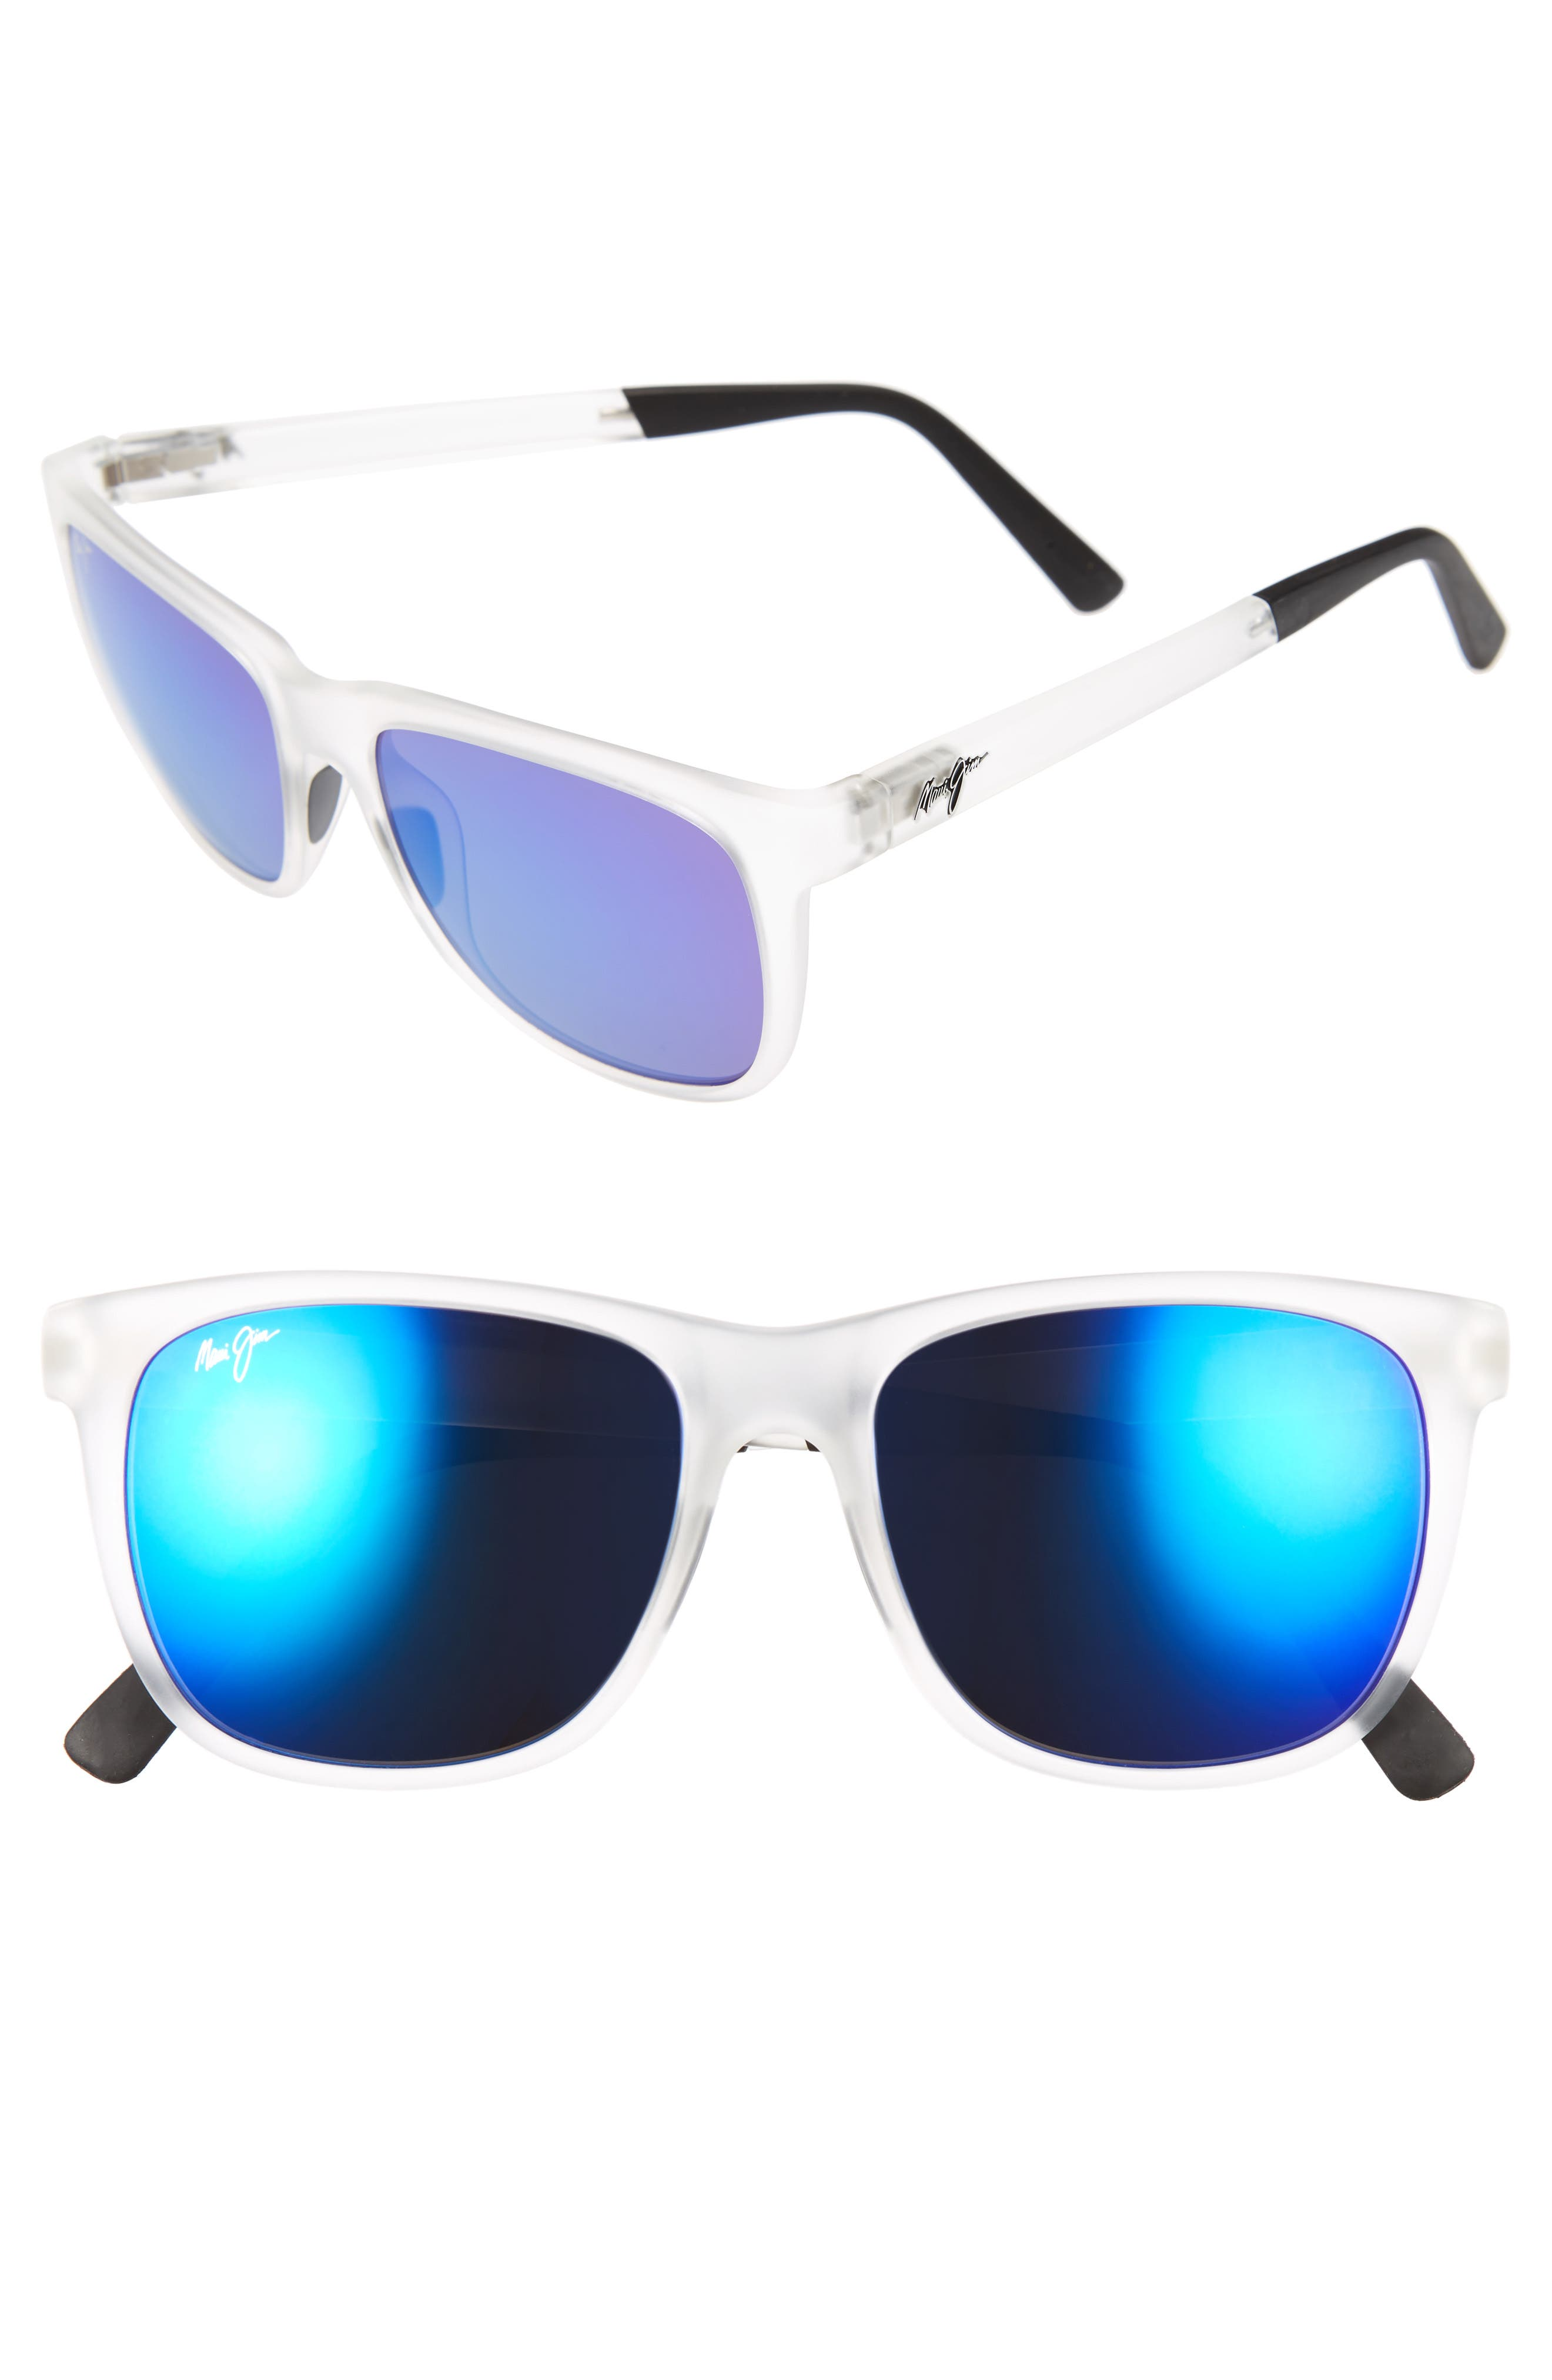 Maui Jim Tail Slide 5m Polarized Sunglasses - Frosted Crystal